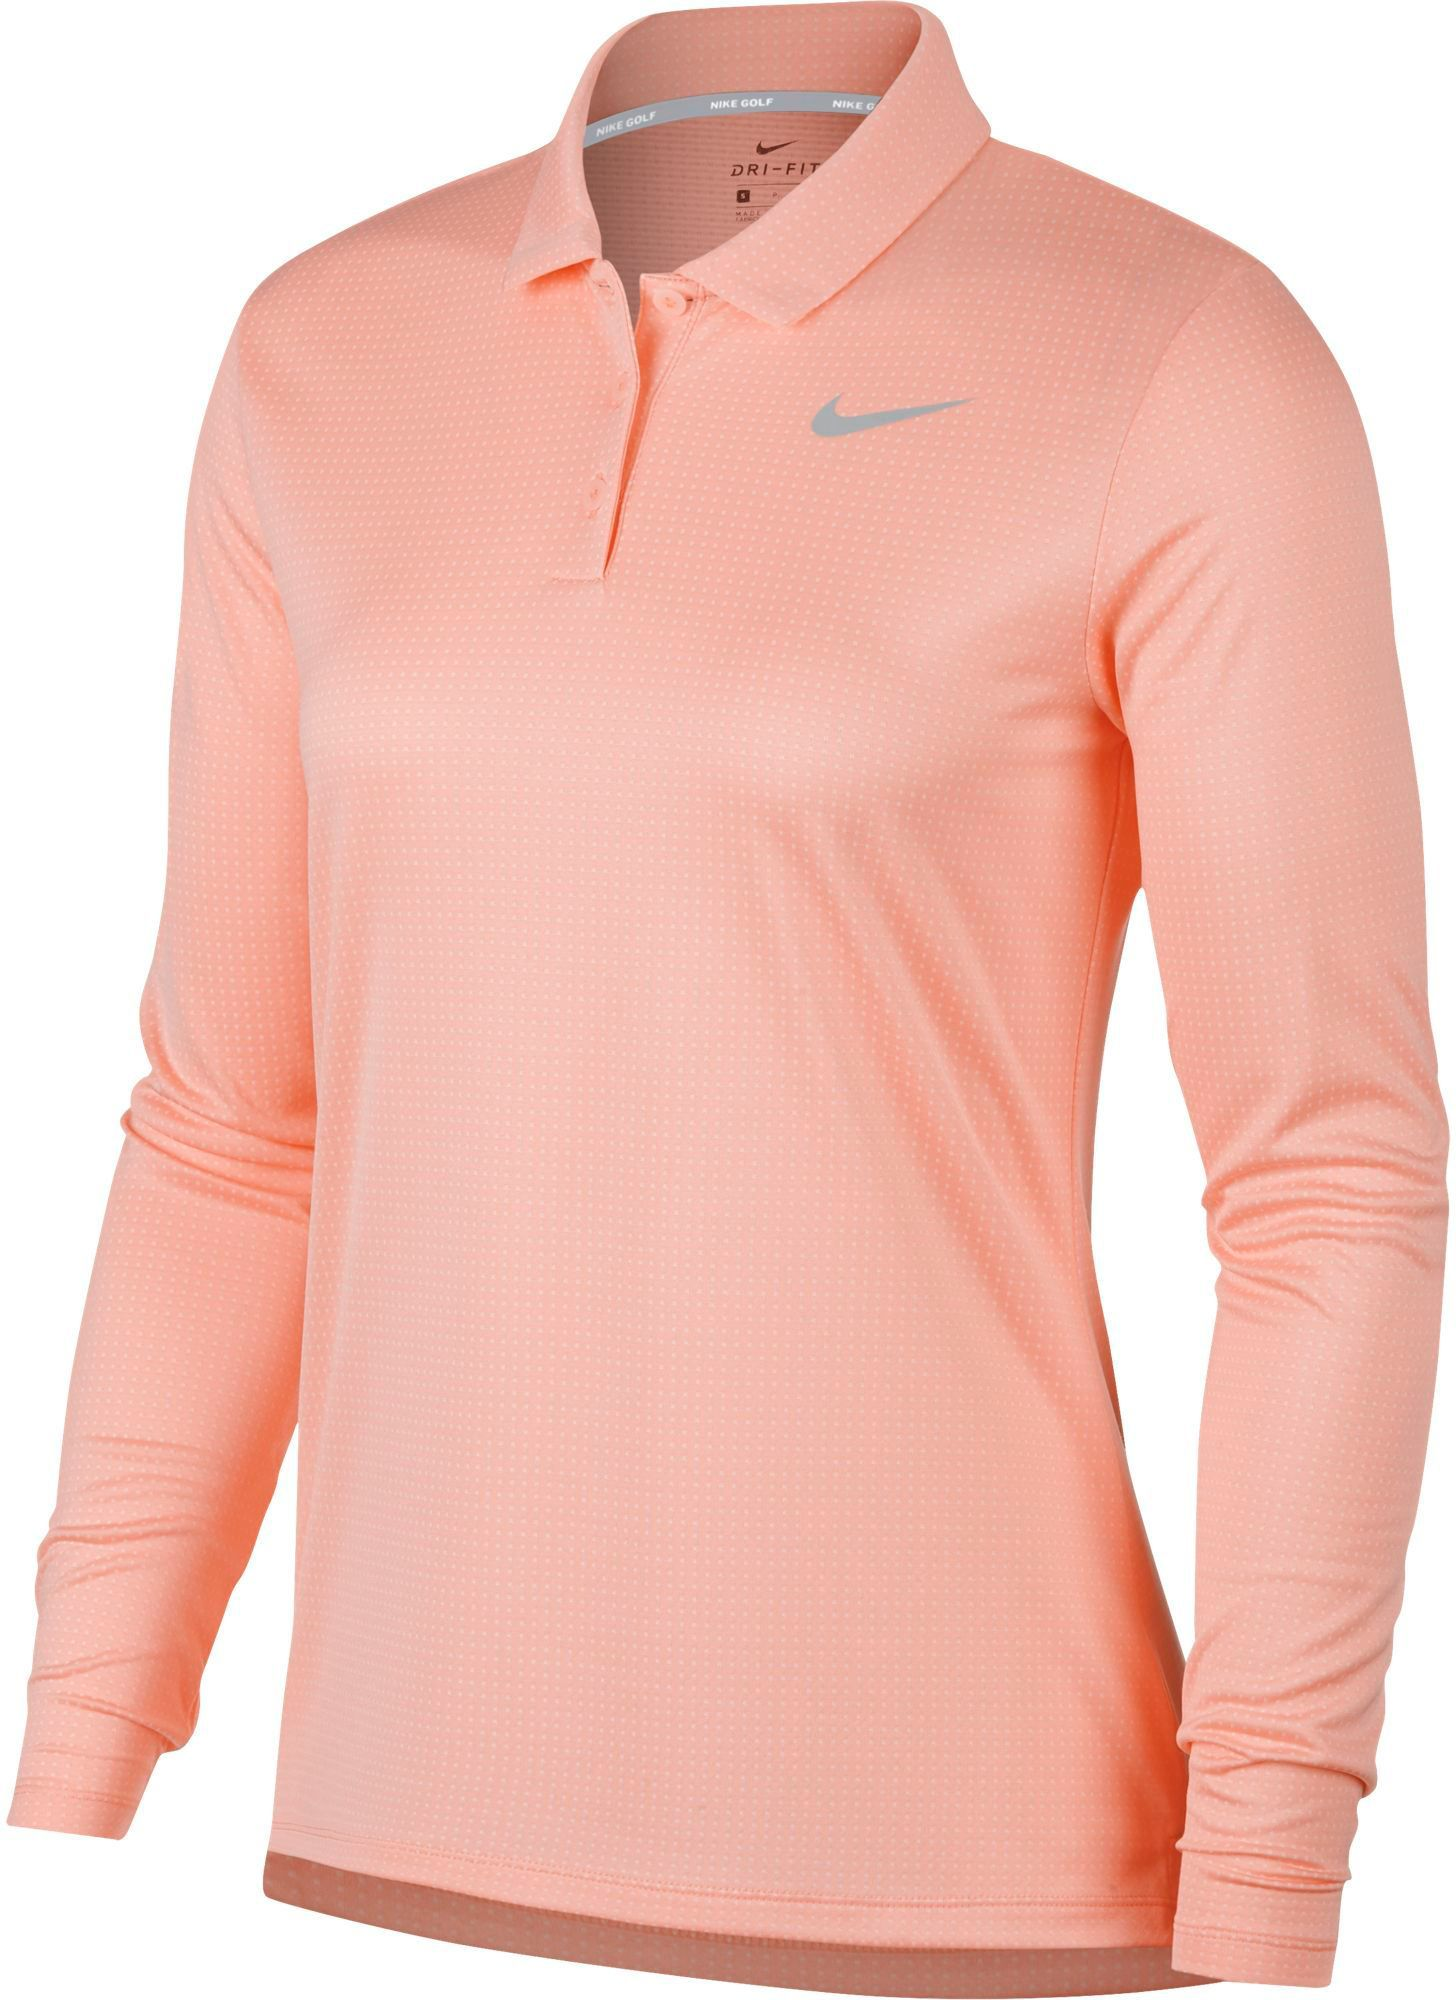 4bfde7b3 Nike Women's Dry Long Sleeve Core Golf Polo, Multiple Colors (on various  websites). This is ideal for December, once the sun goes down (and they're  likely ...